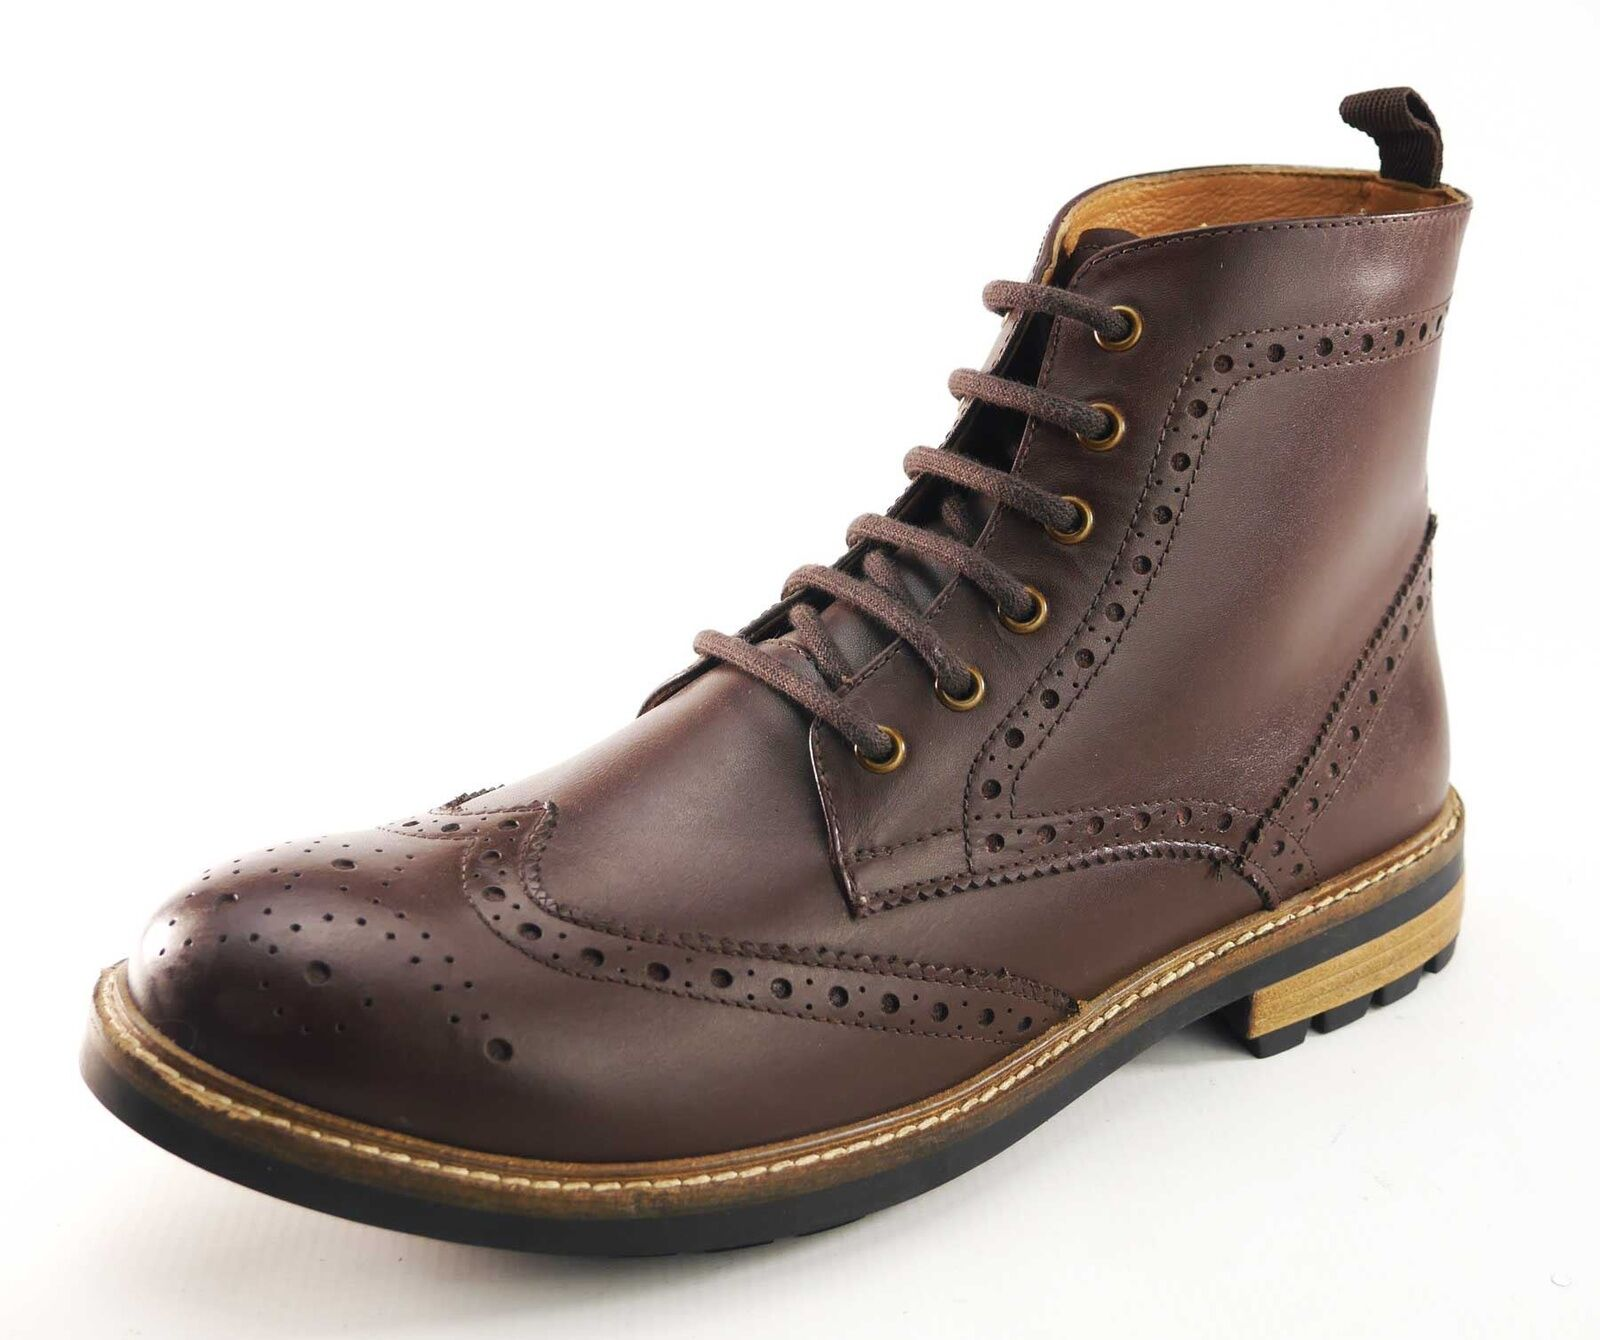 Frank James Hackney Real Leather Lace Up Brogue Boots Brown